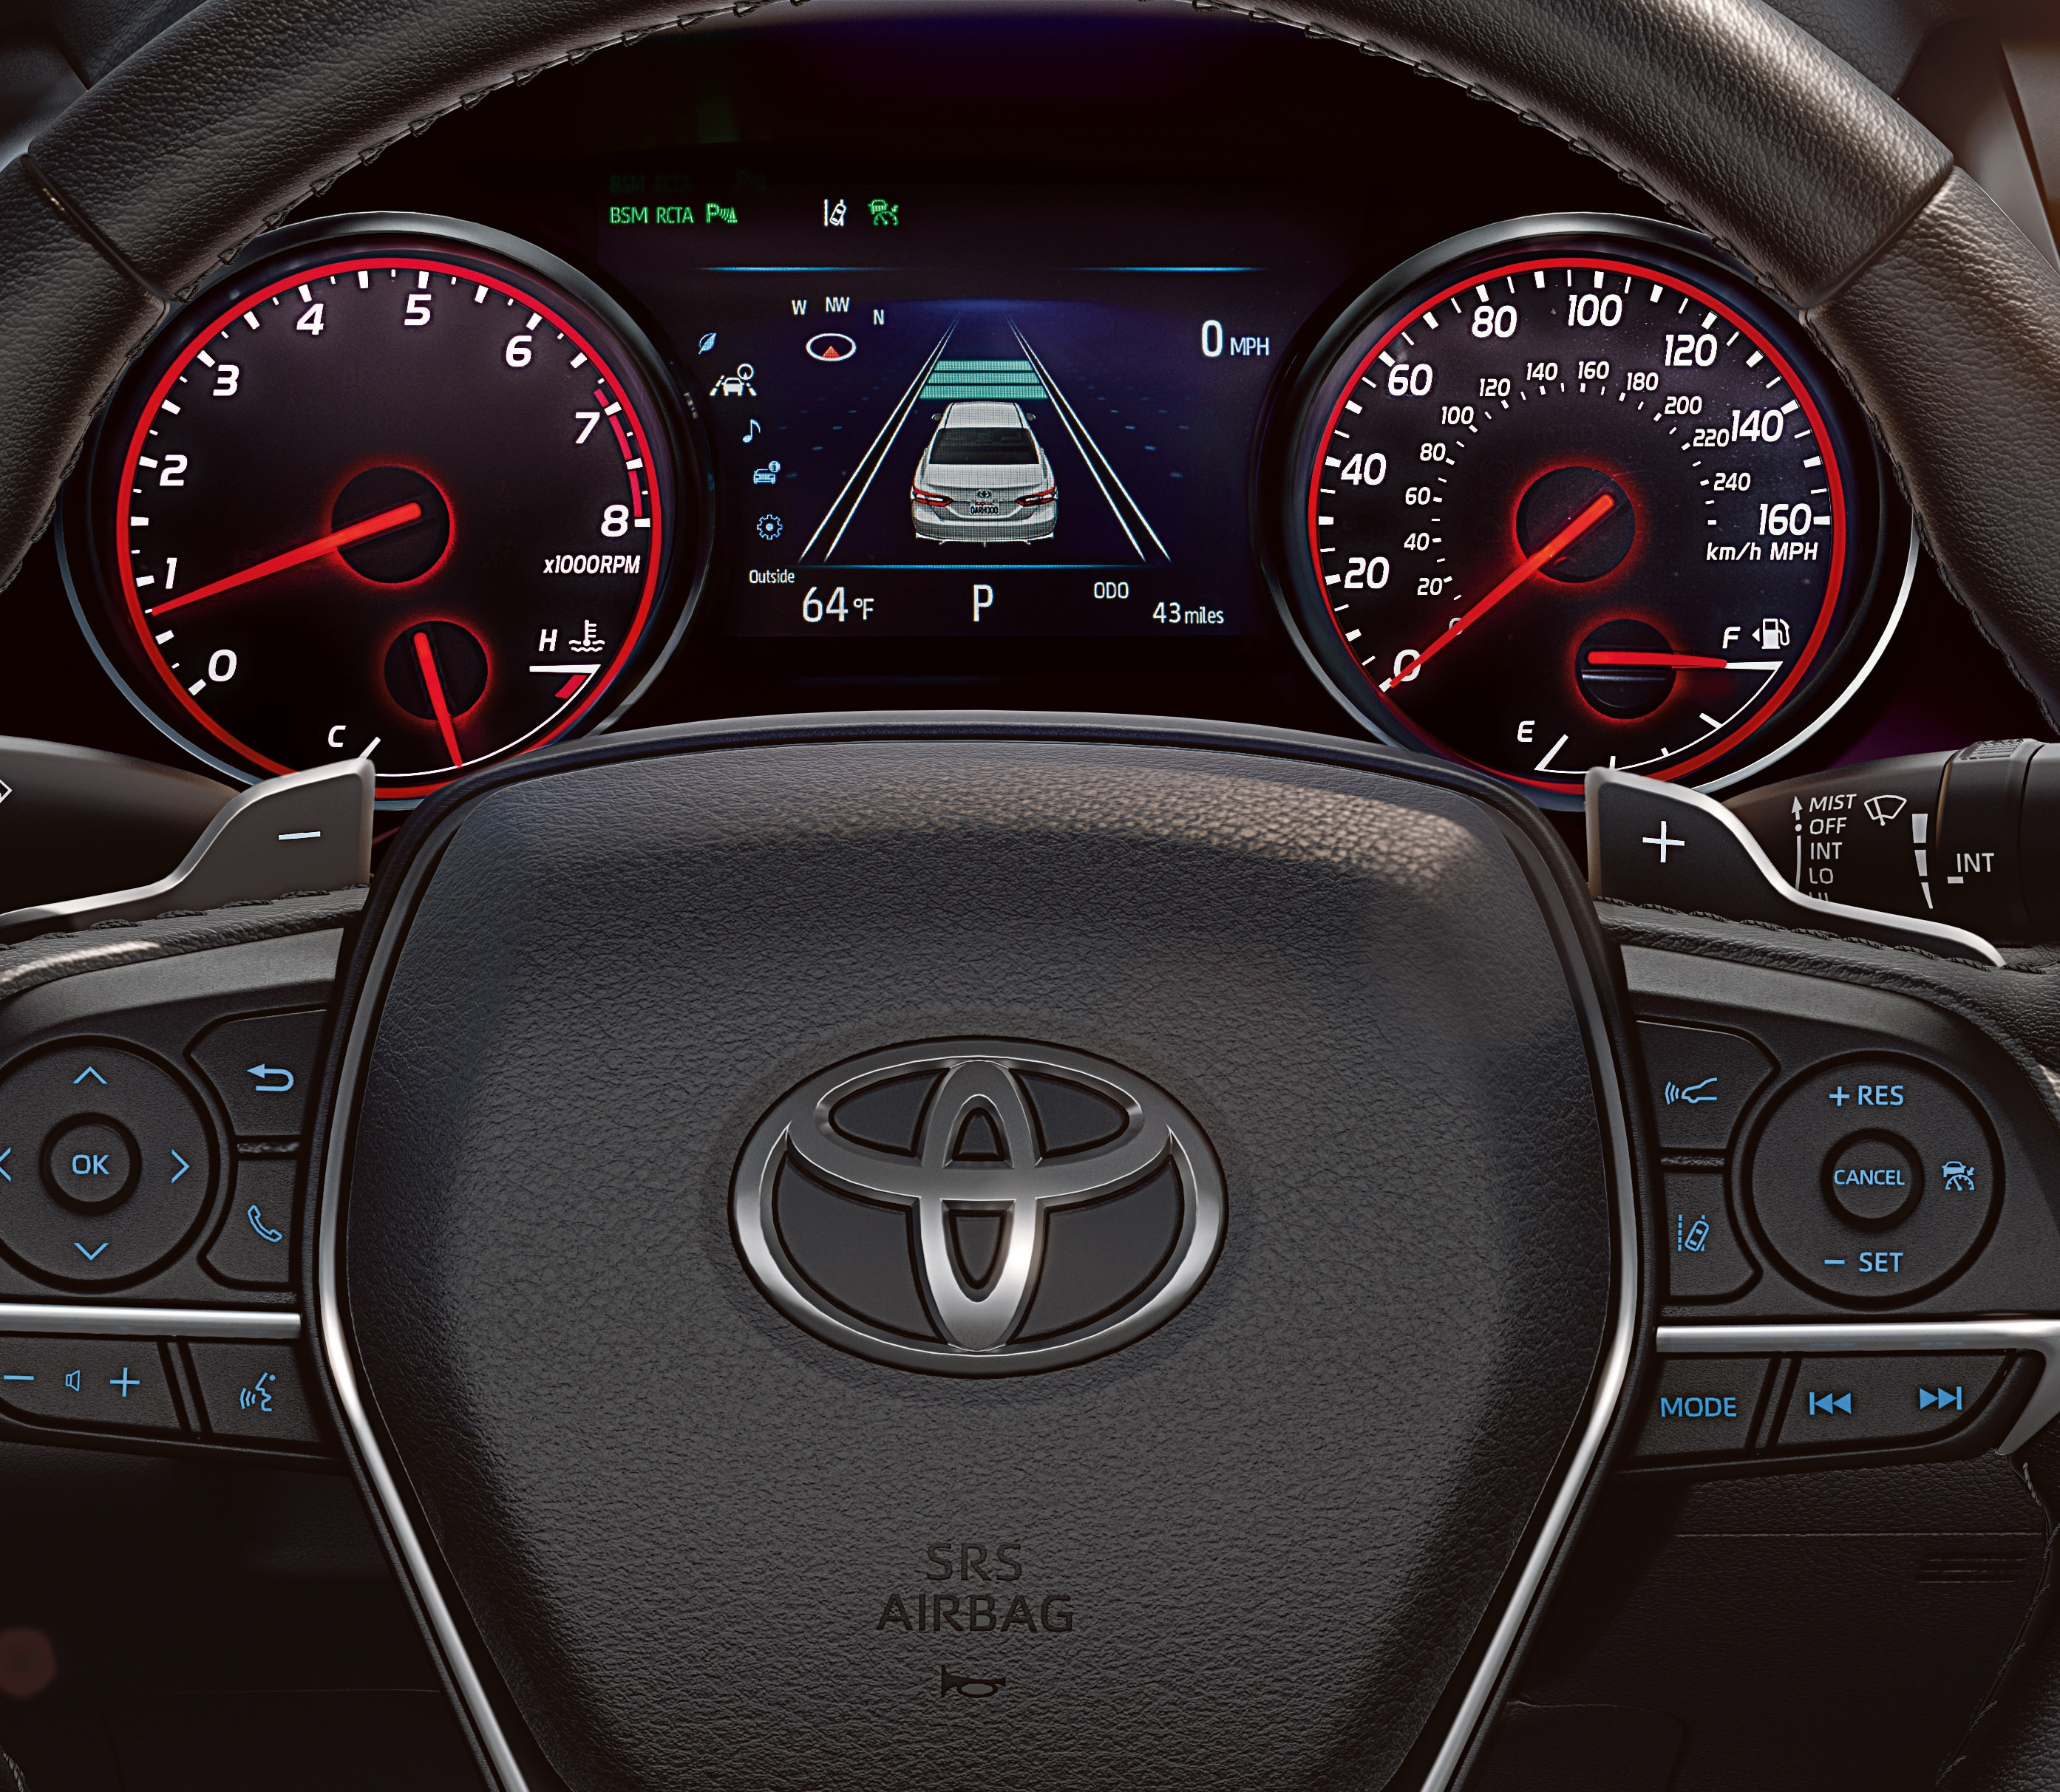 Dashboard of the 2018 Toyota Camry